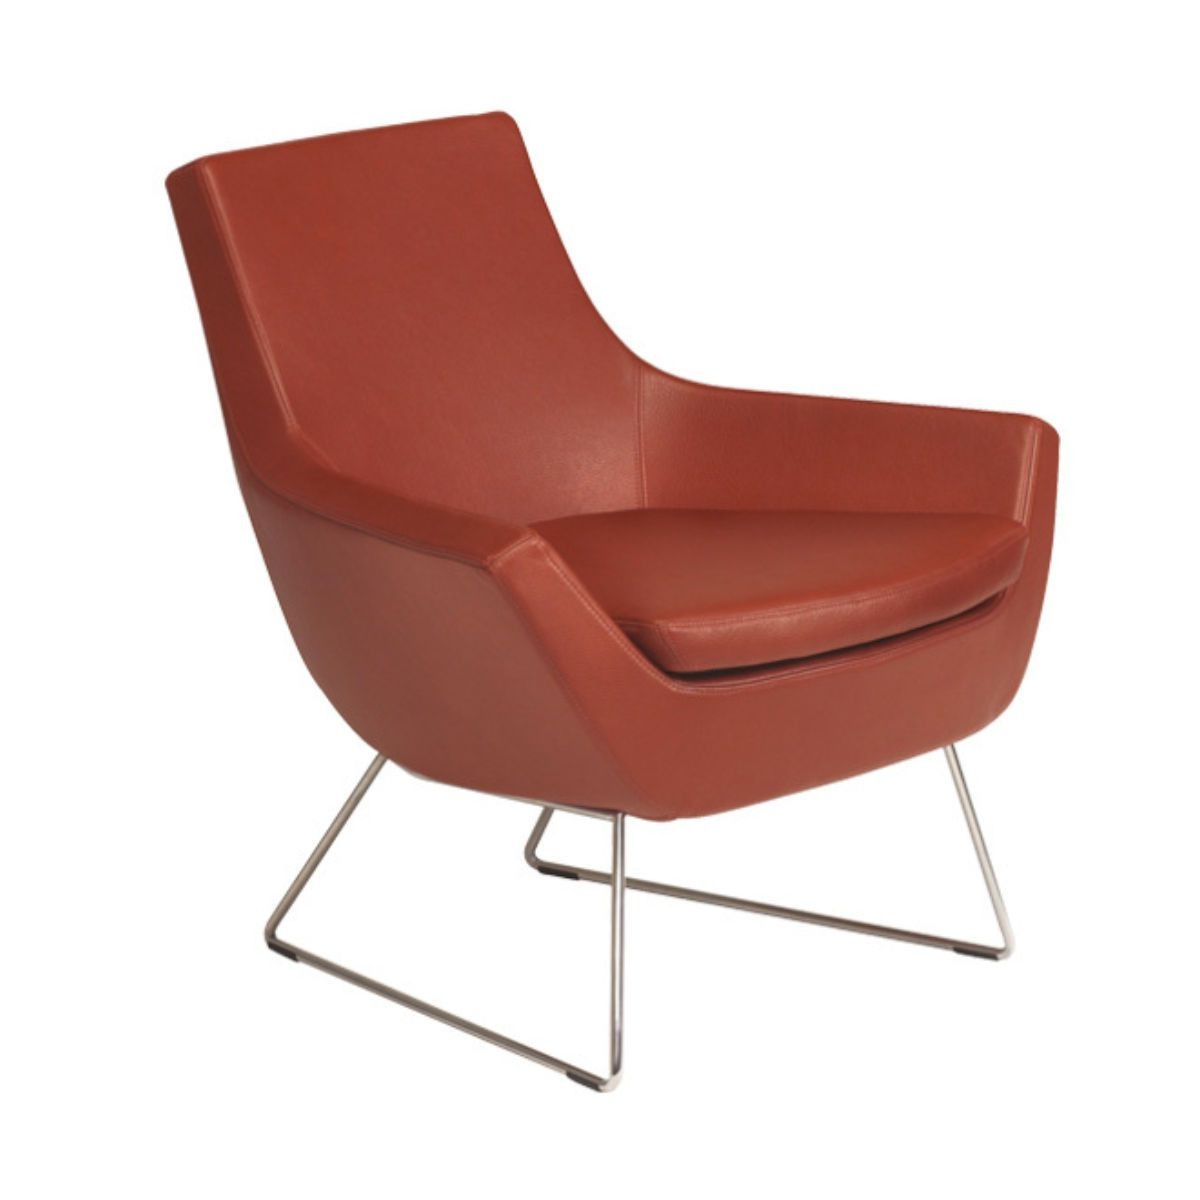 Swedese Happy easy chair low back brown leather